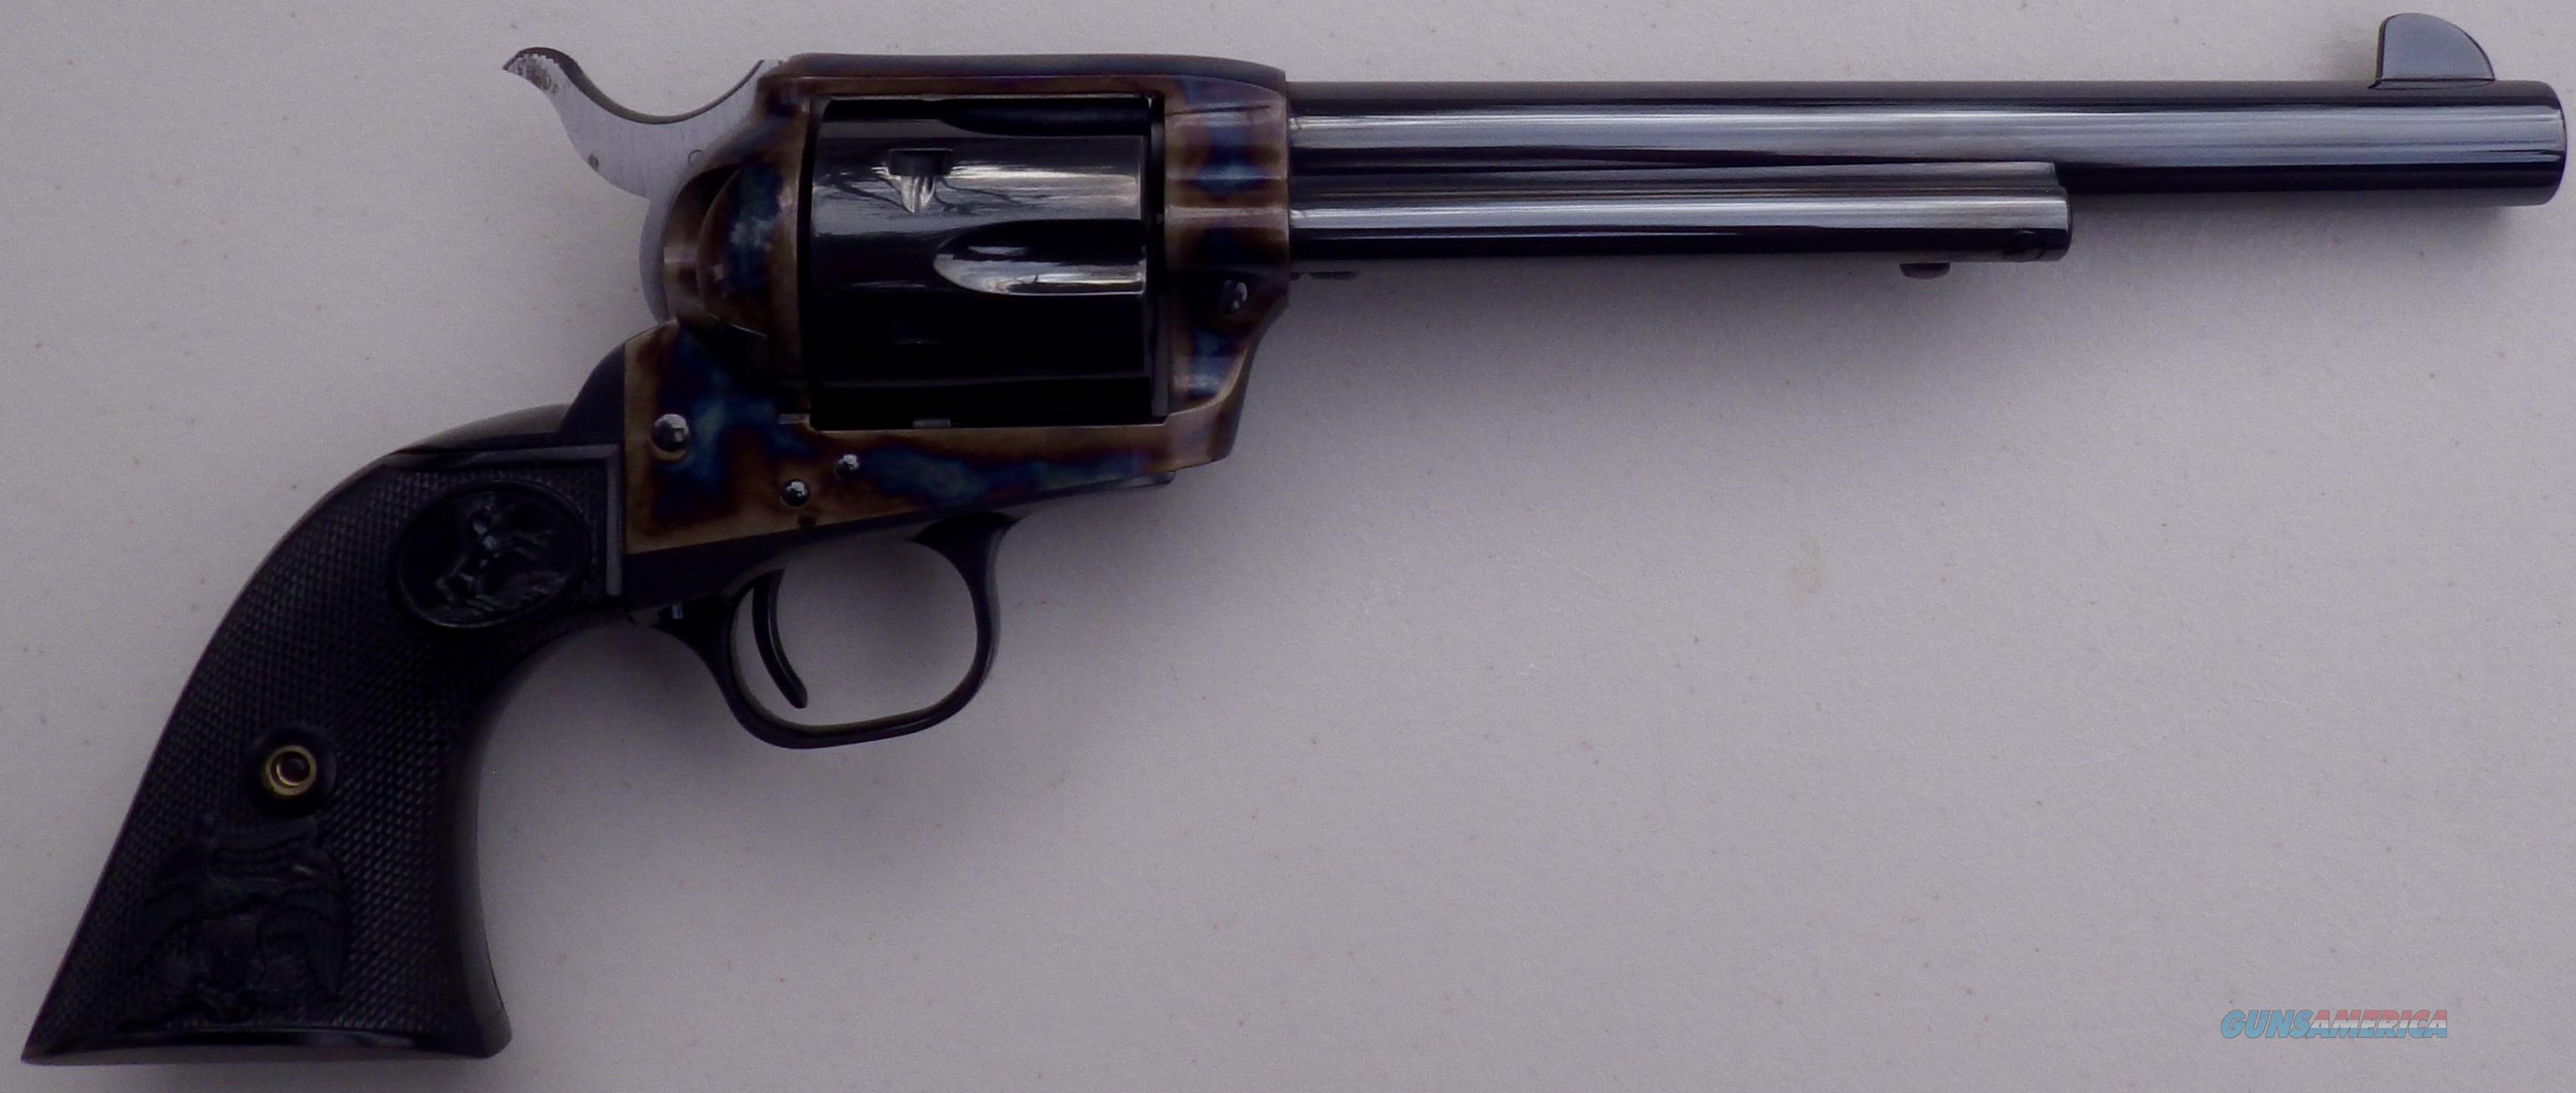 Colt SAA .45 7.5-inch, color case frame, recent, new in blue box  Guns > Pistols > Colt Single Action Revolvers - 3rd Gen.